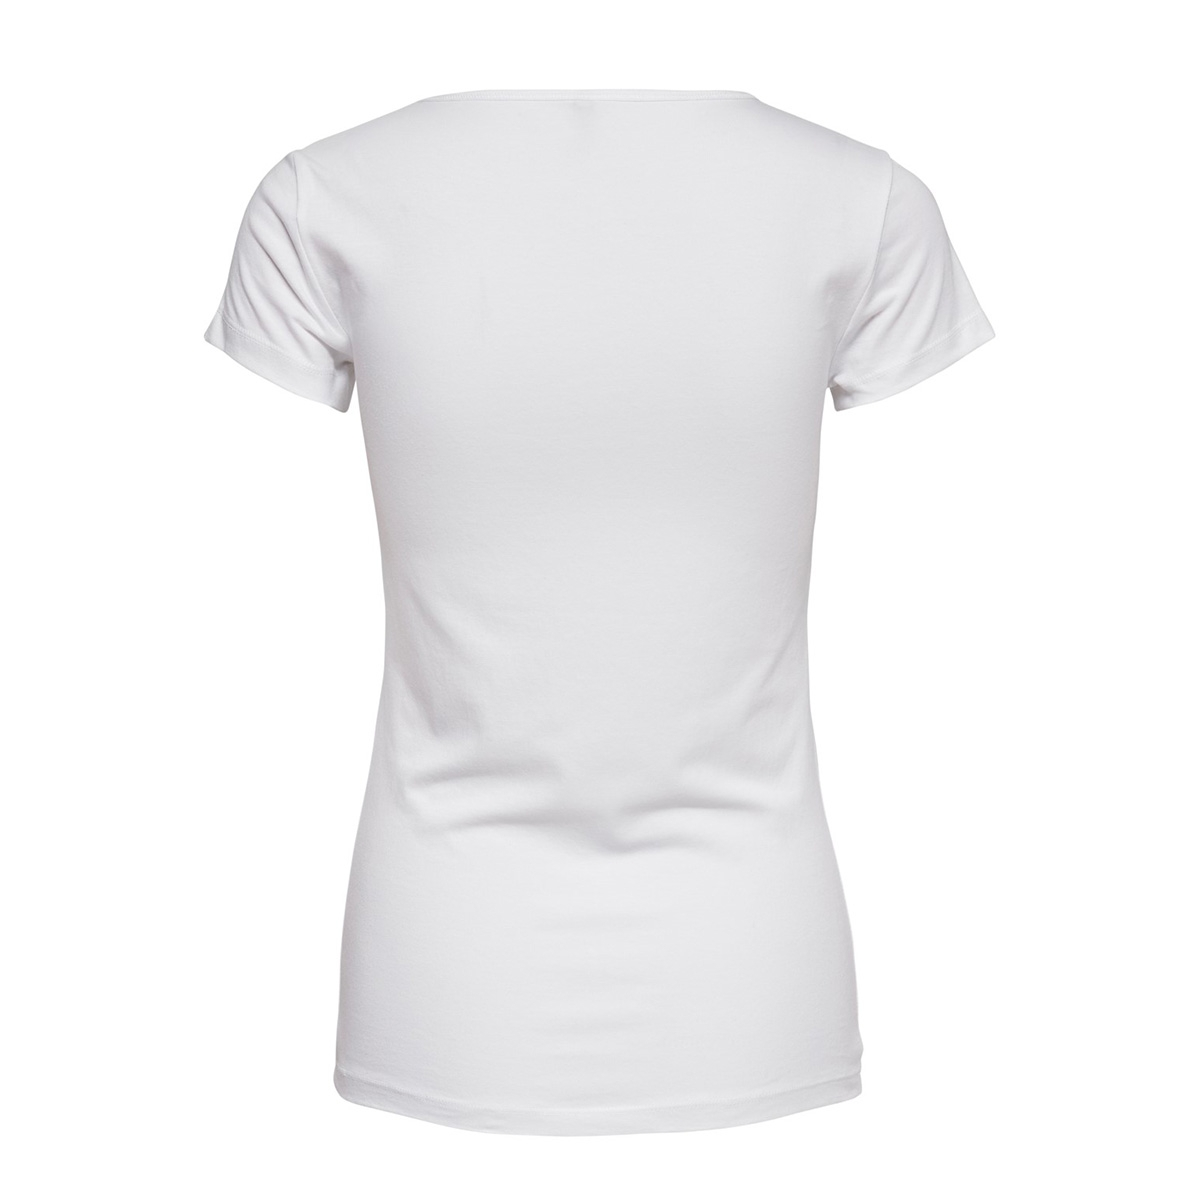 onllive love s/s o-neck top noos jr 15205059 only t-shirt white